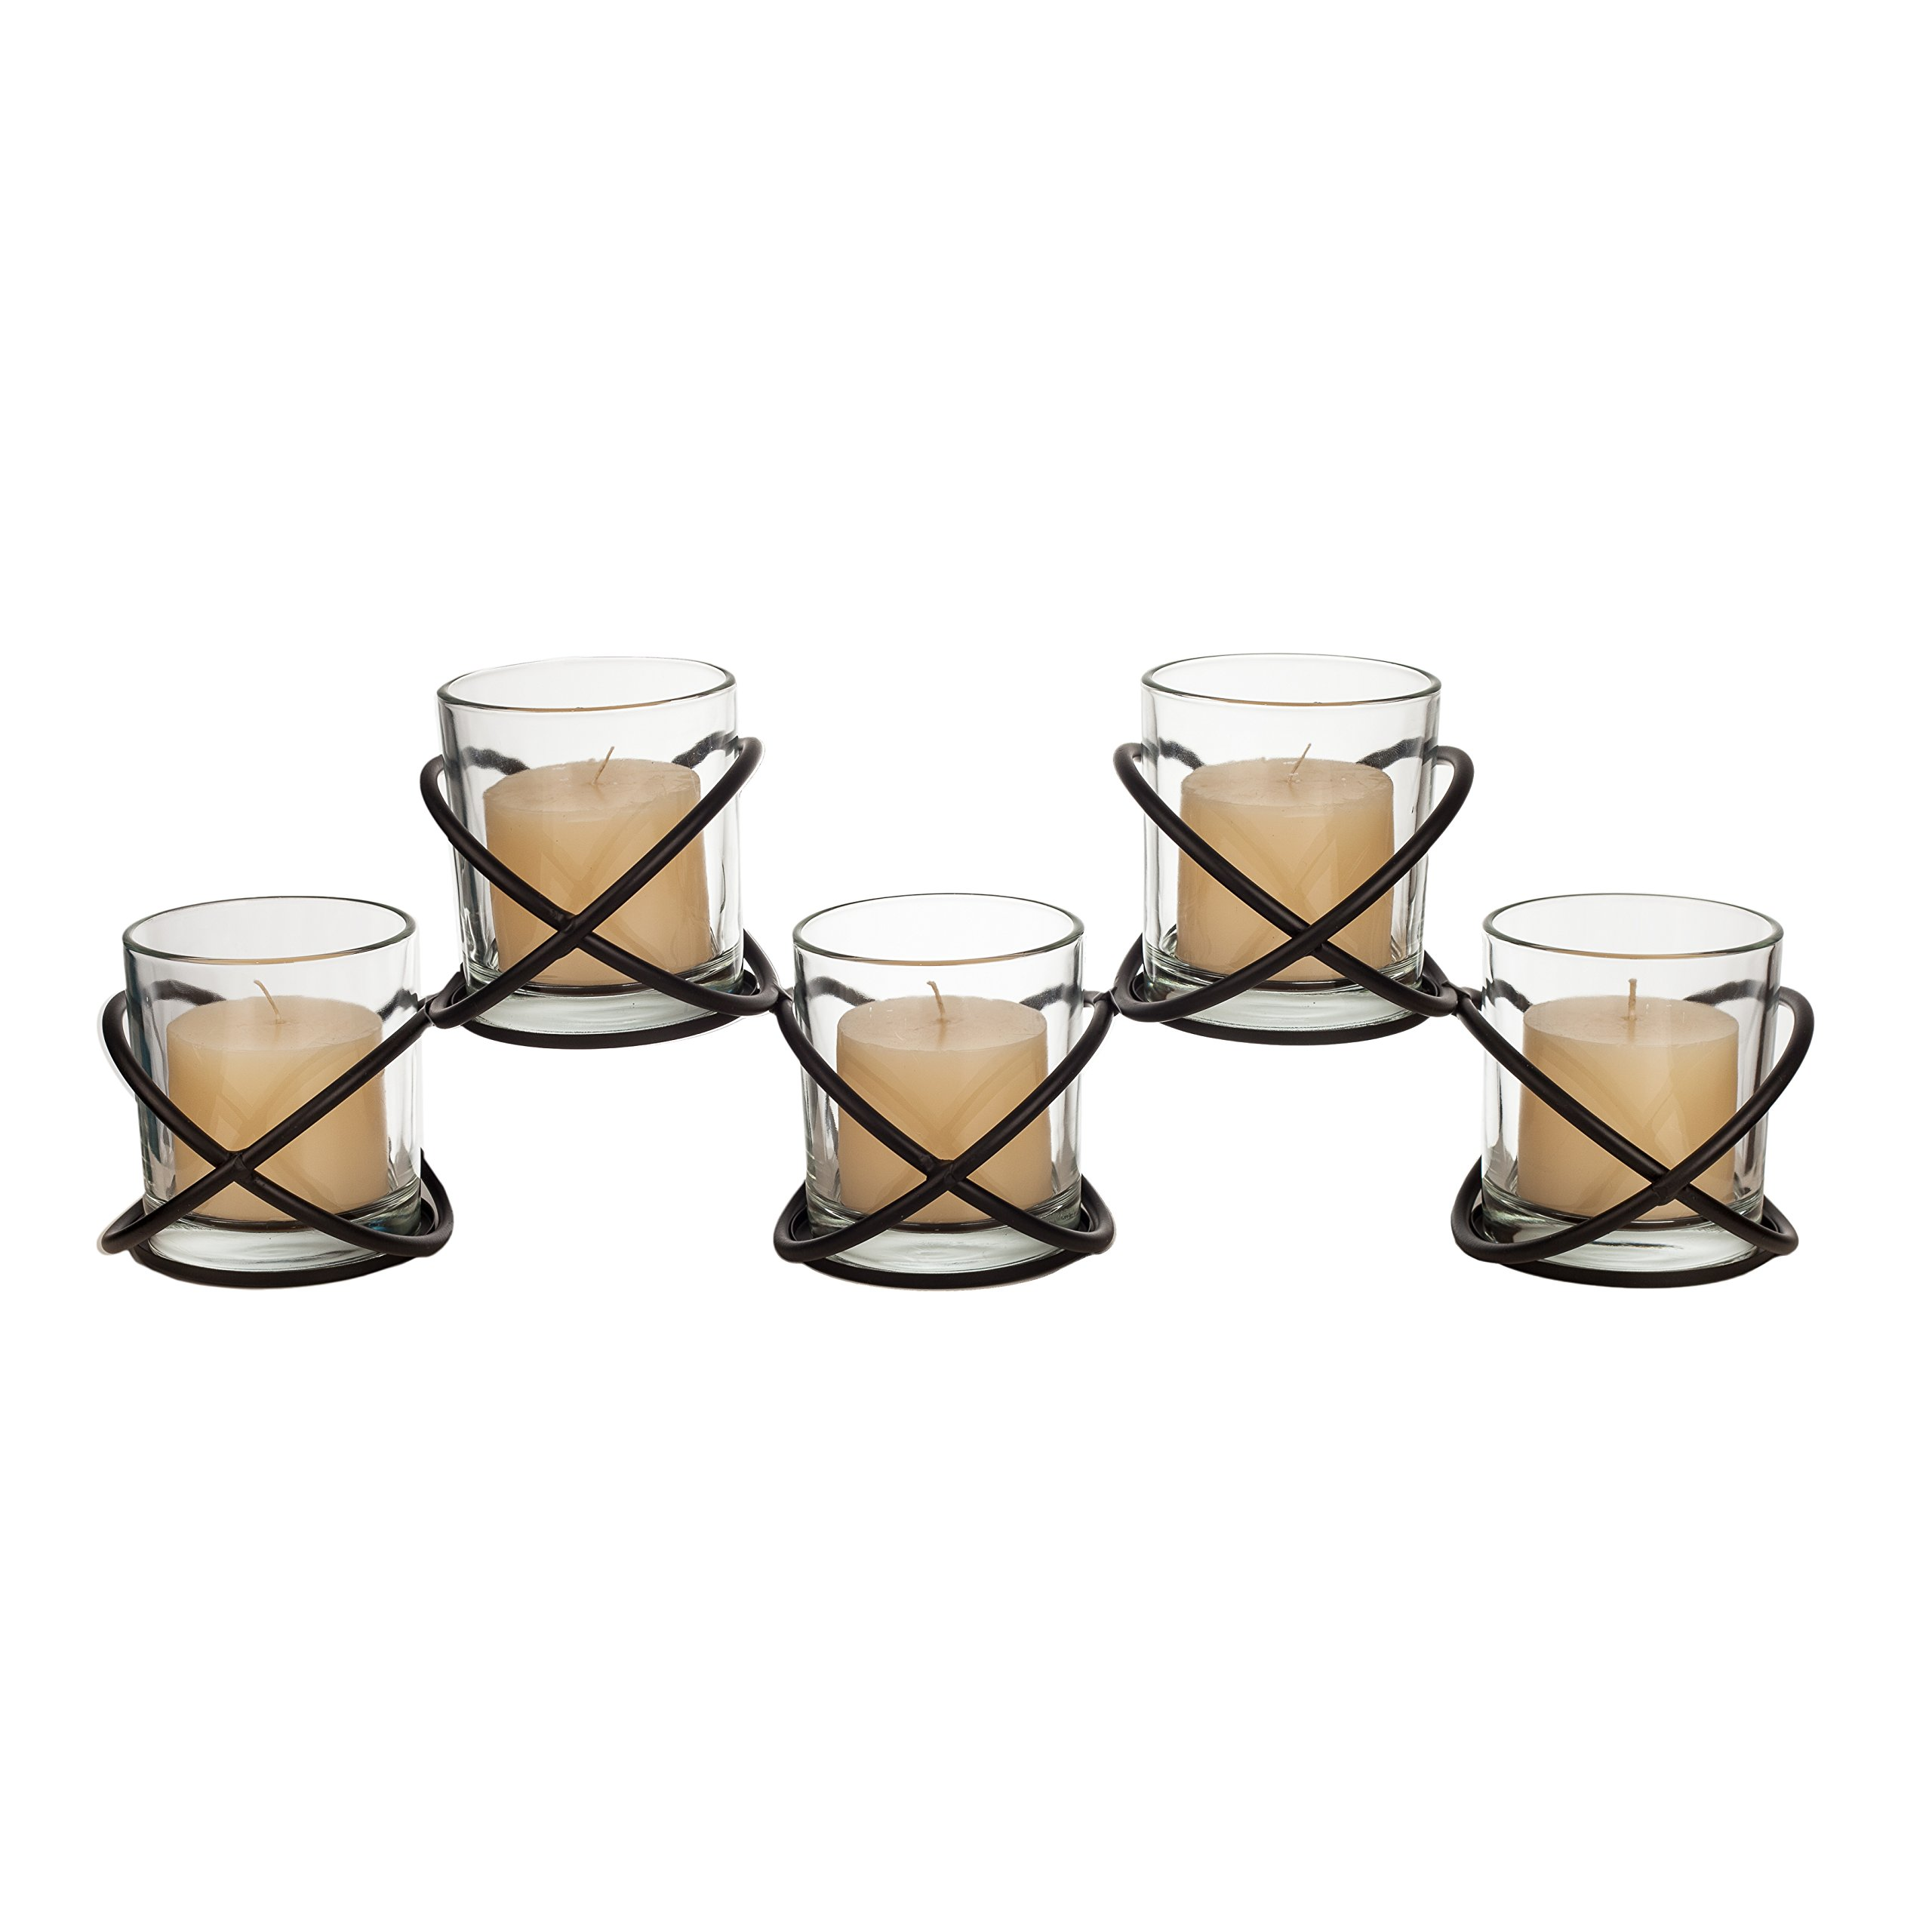 Danya B. KF428 Indoor/Outdoor Decorative Votive Candle Holders – Set of Five Glass Hurricanes on Orbits Metal Stand